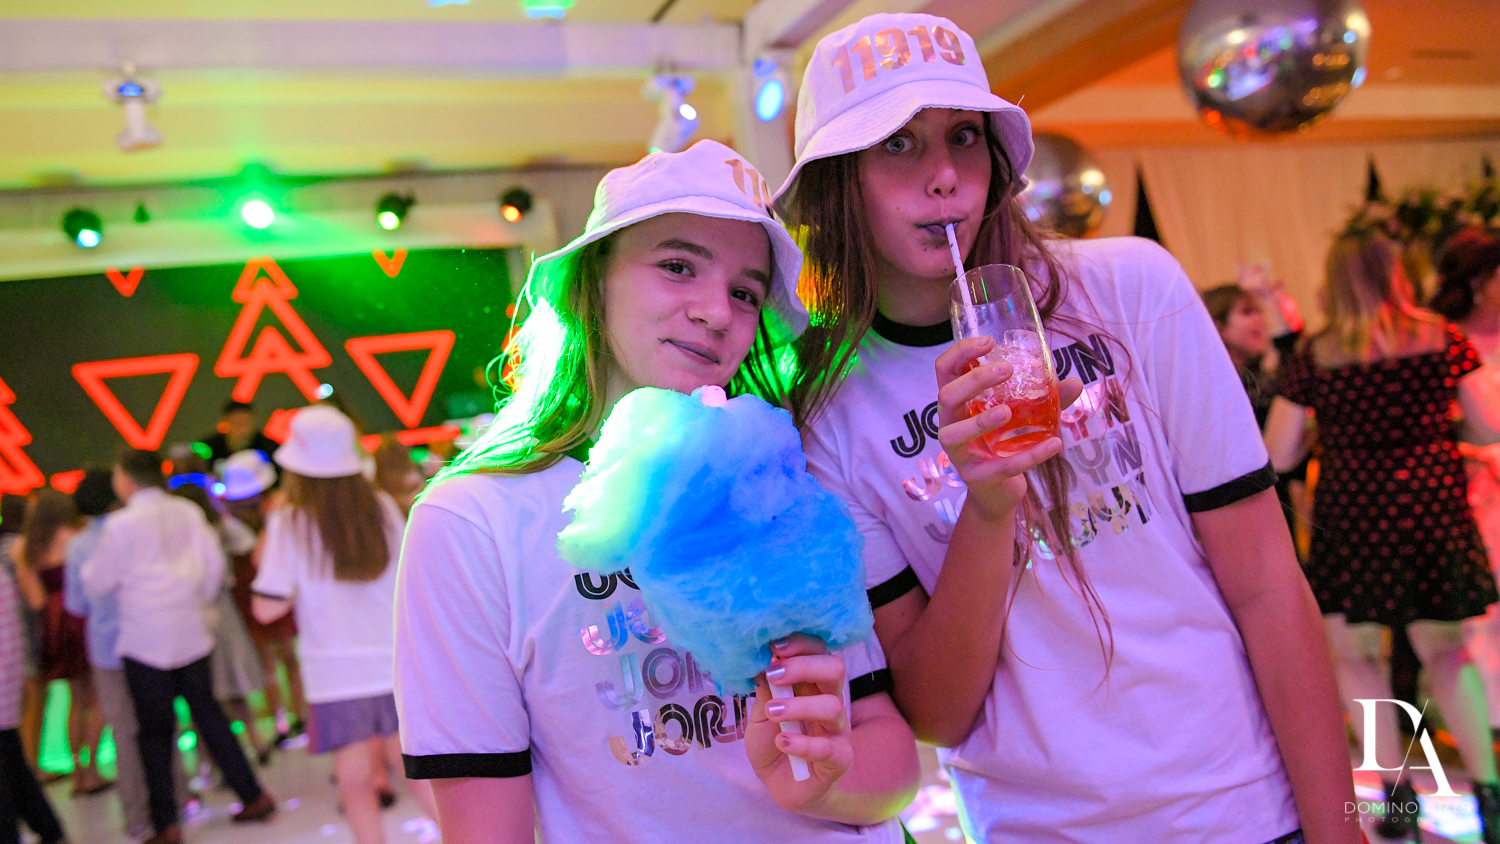 cotton candy at Masquerade Ball Bat Mitzvah at Ritz Carlton Fort Lauderdale by Domino Arts Photography